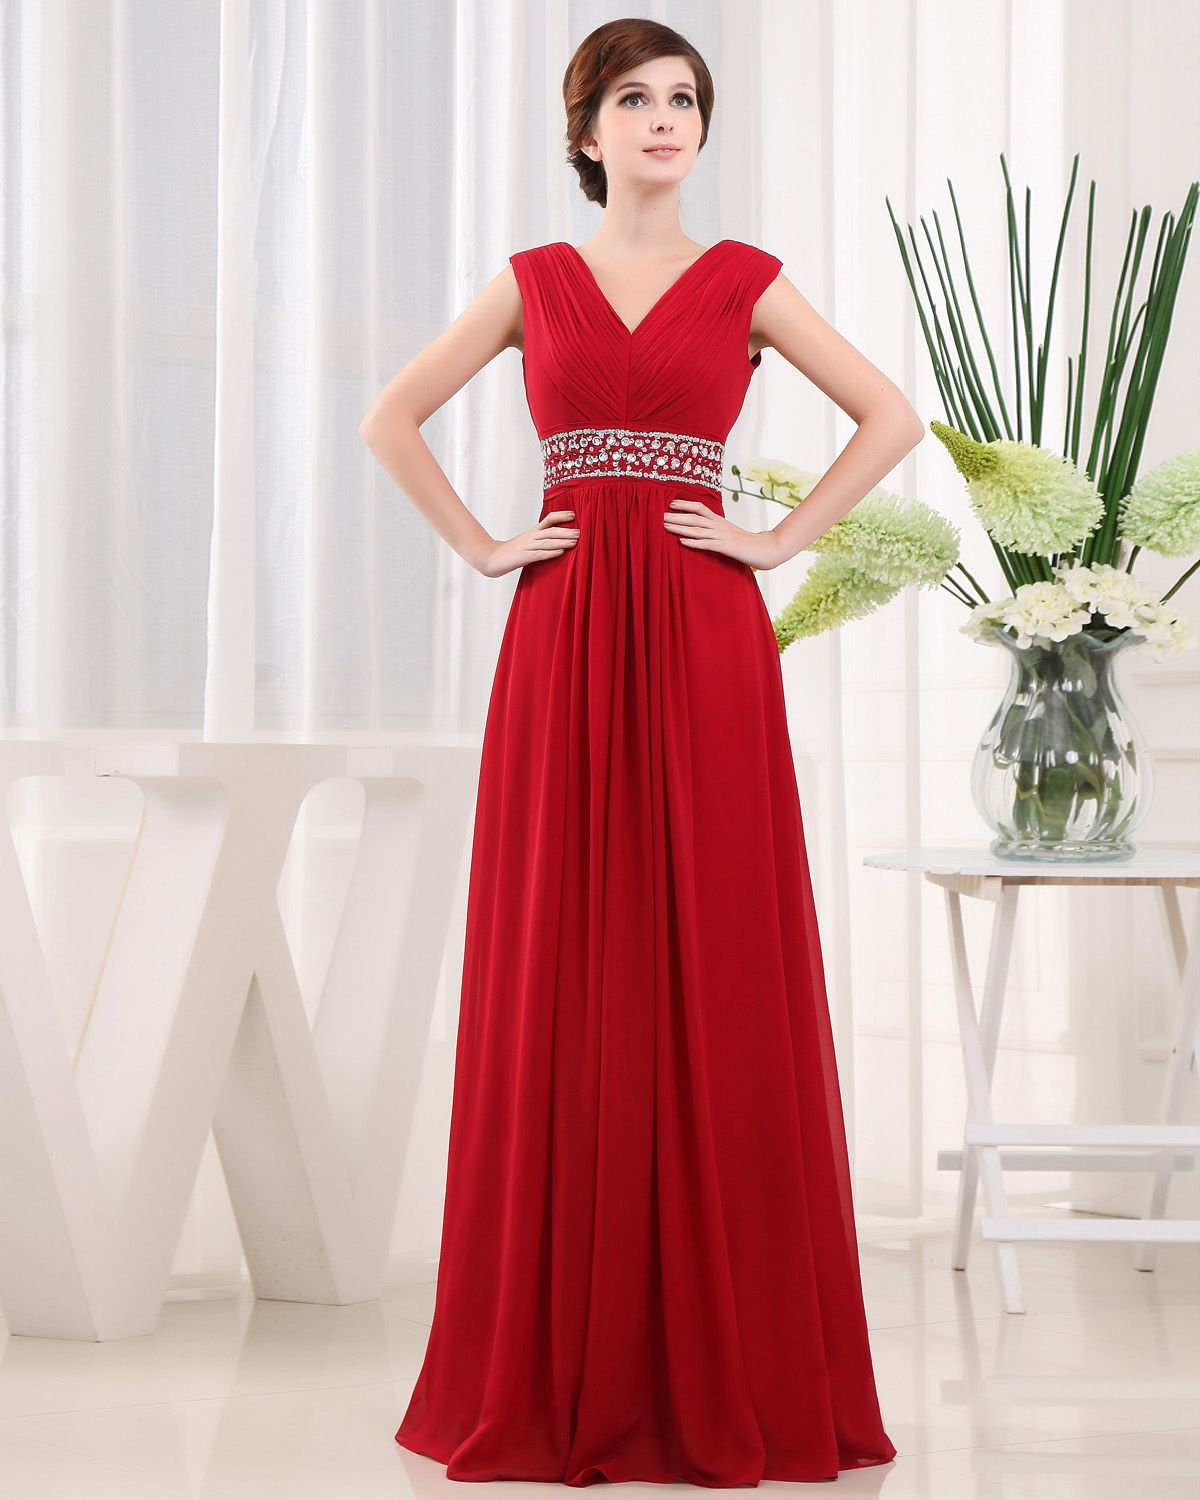 Red evening dress with beads on sash evening dress pinterest